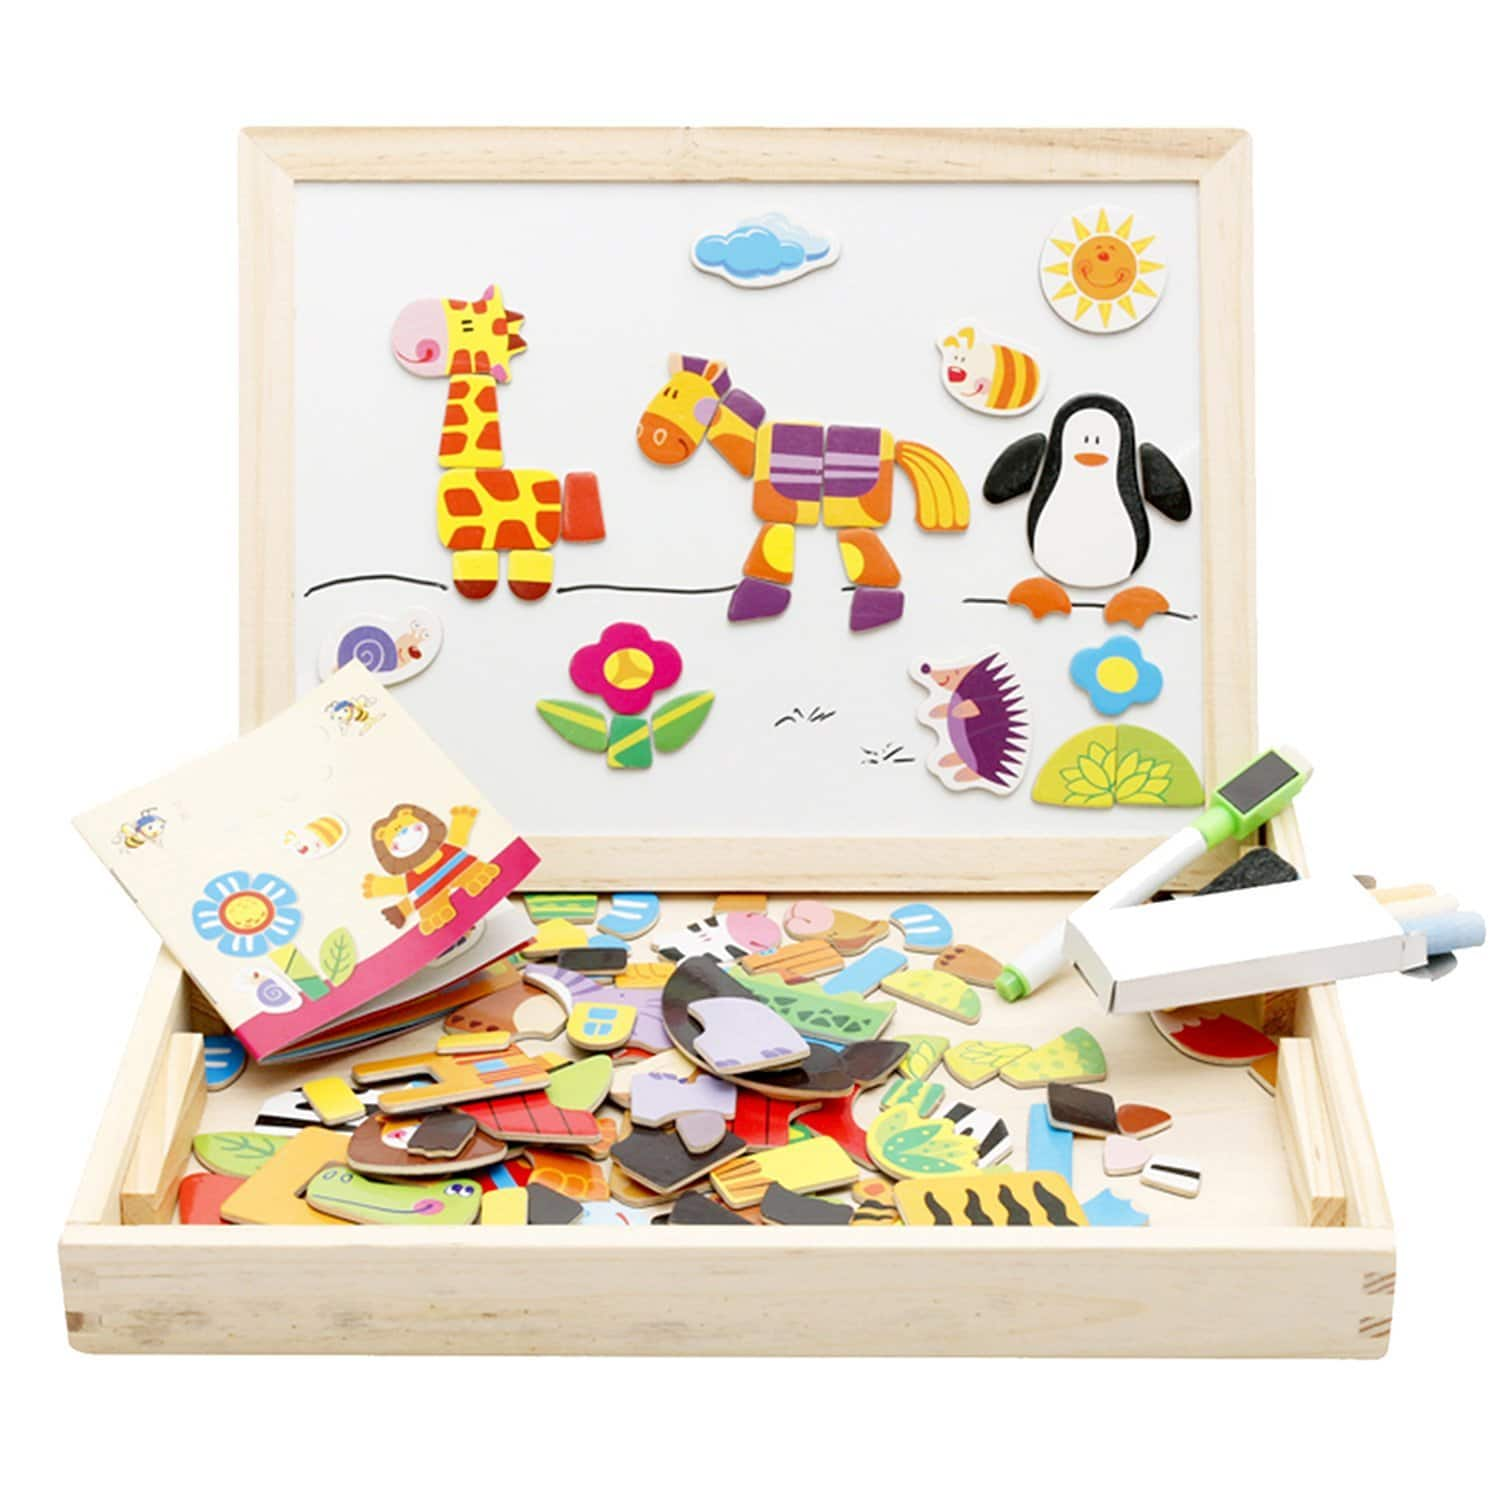 50% off Wooden Educational Toys Magnetic Art Easel Animals Wooden Puzzles Games for Kids $9.35